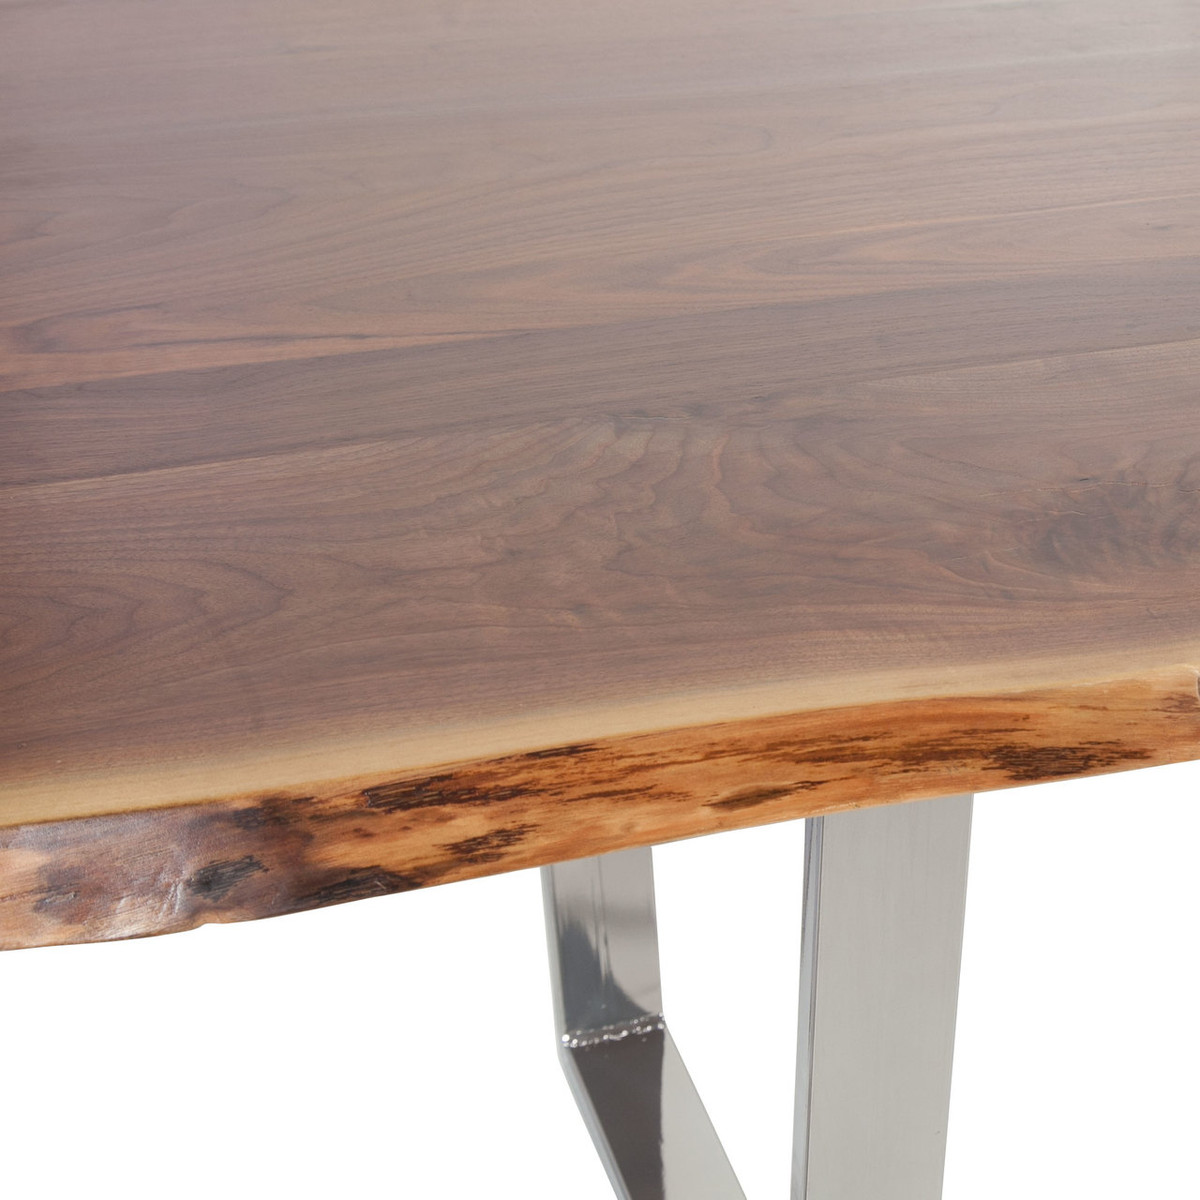 Extra large live edge slab walnut dining table 84 joseph allen home extra large live edge slab walnut dining table 84 dzzzfo